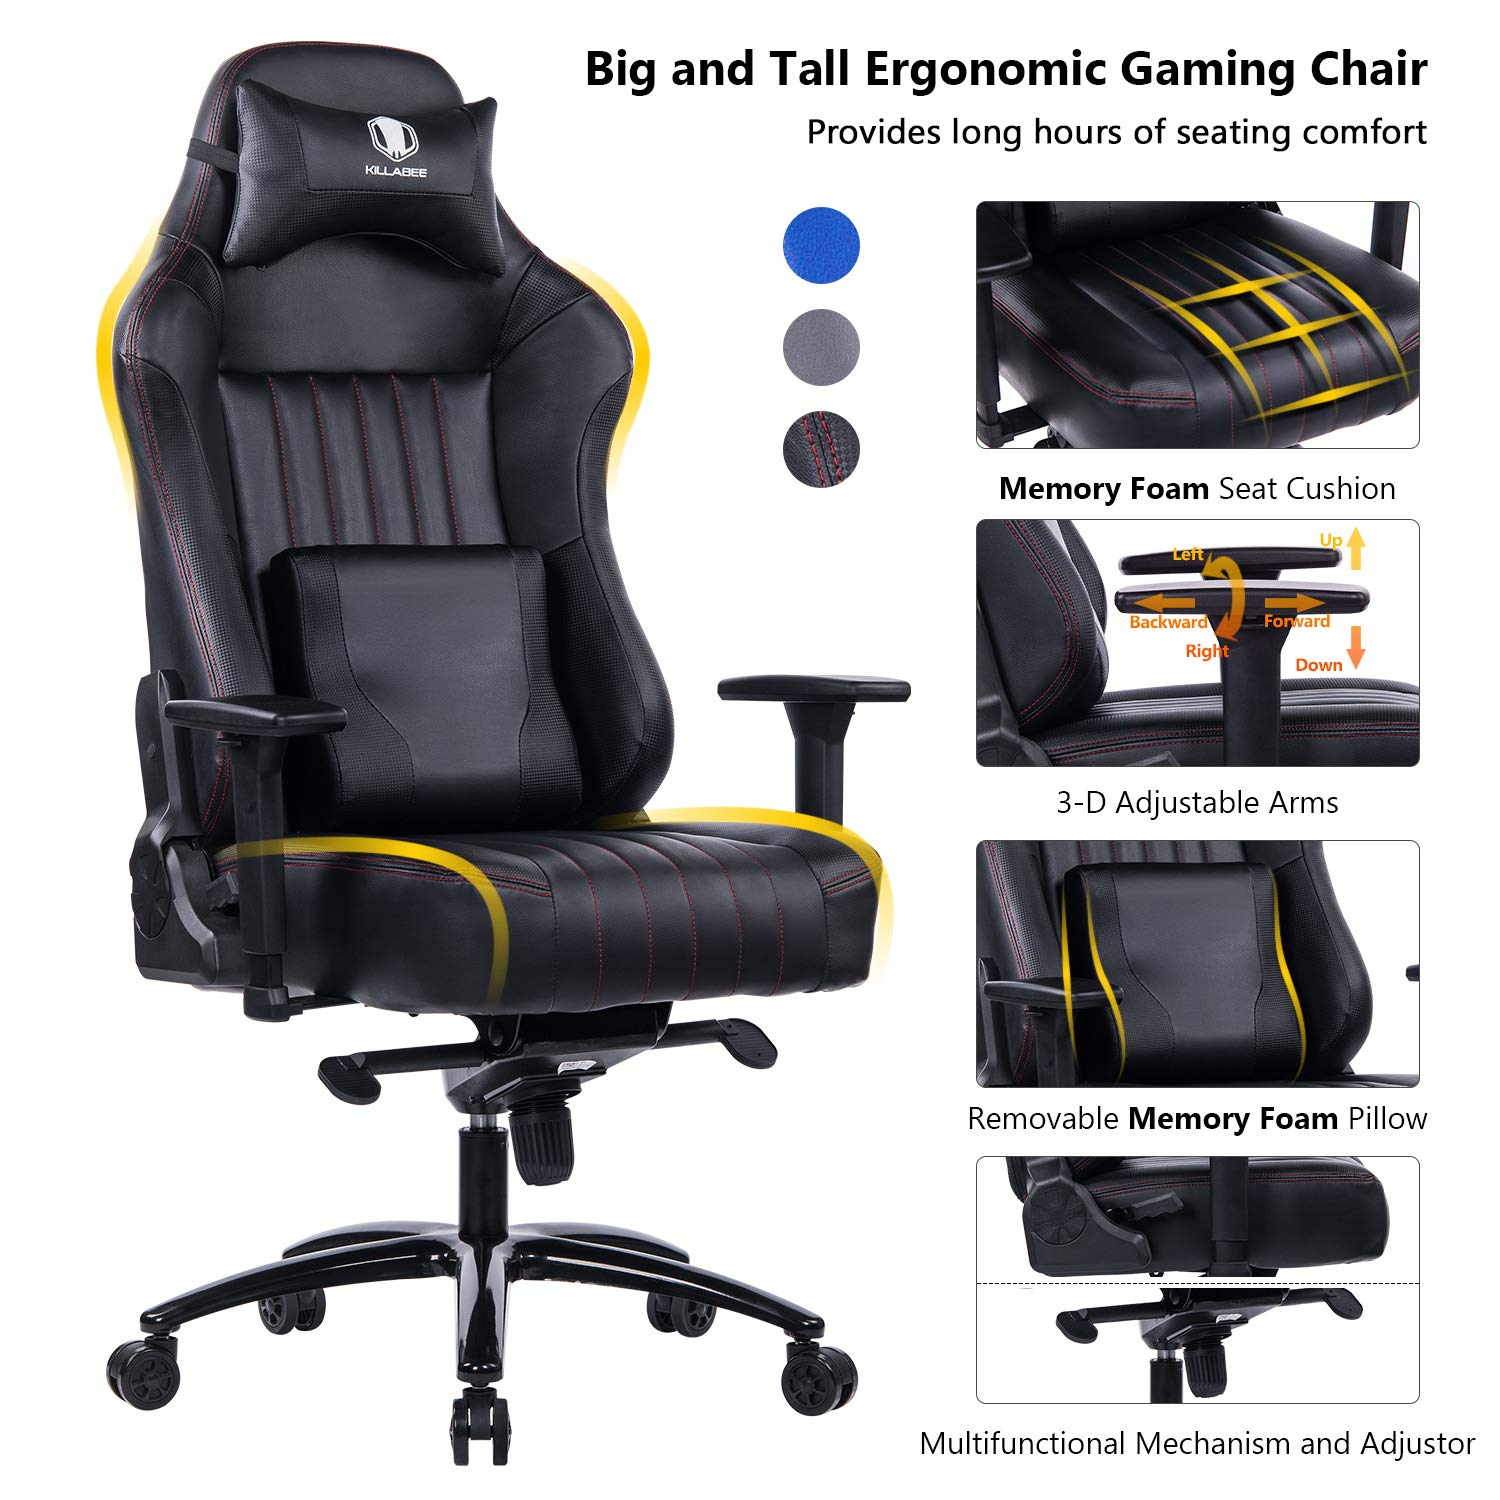 VON RACER Memory Foam Gaming Chair-Adjustable Tilt, Angle and 3D Arms Ergonomic High-Back Leather Racing Executive Computer Desk Office Metal Base Black